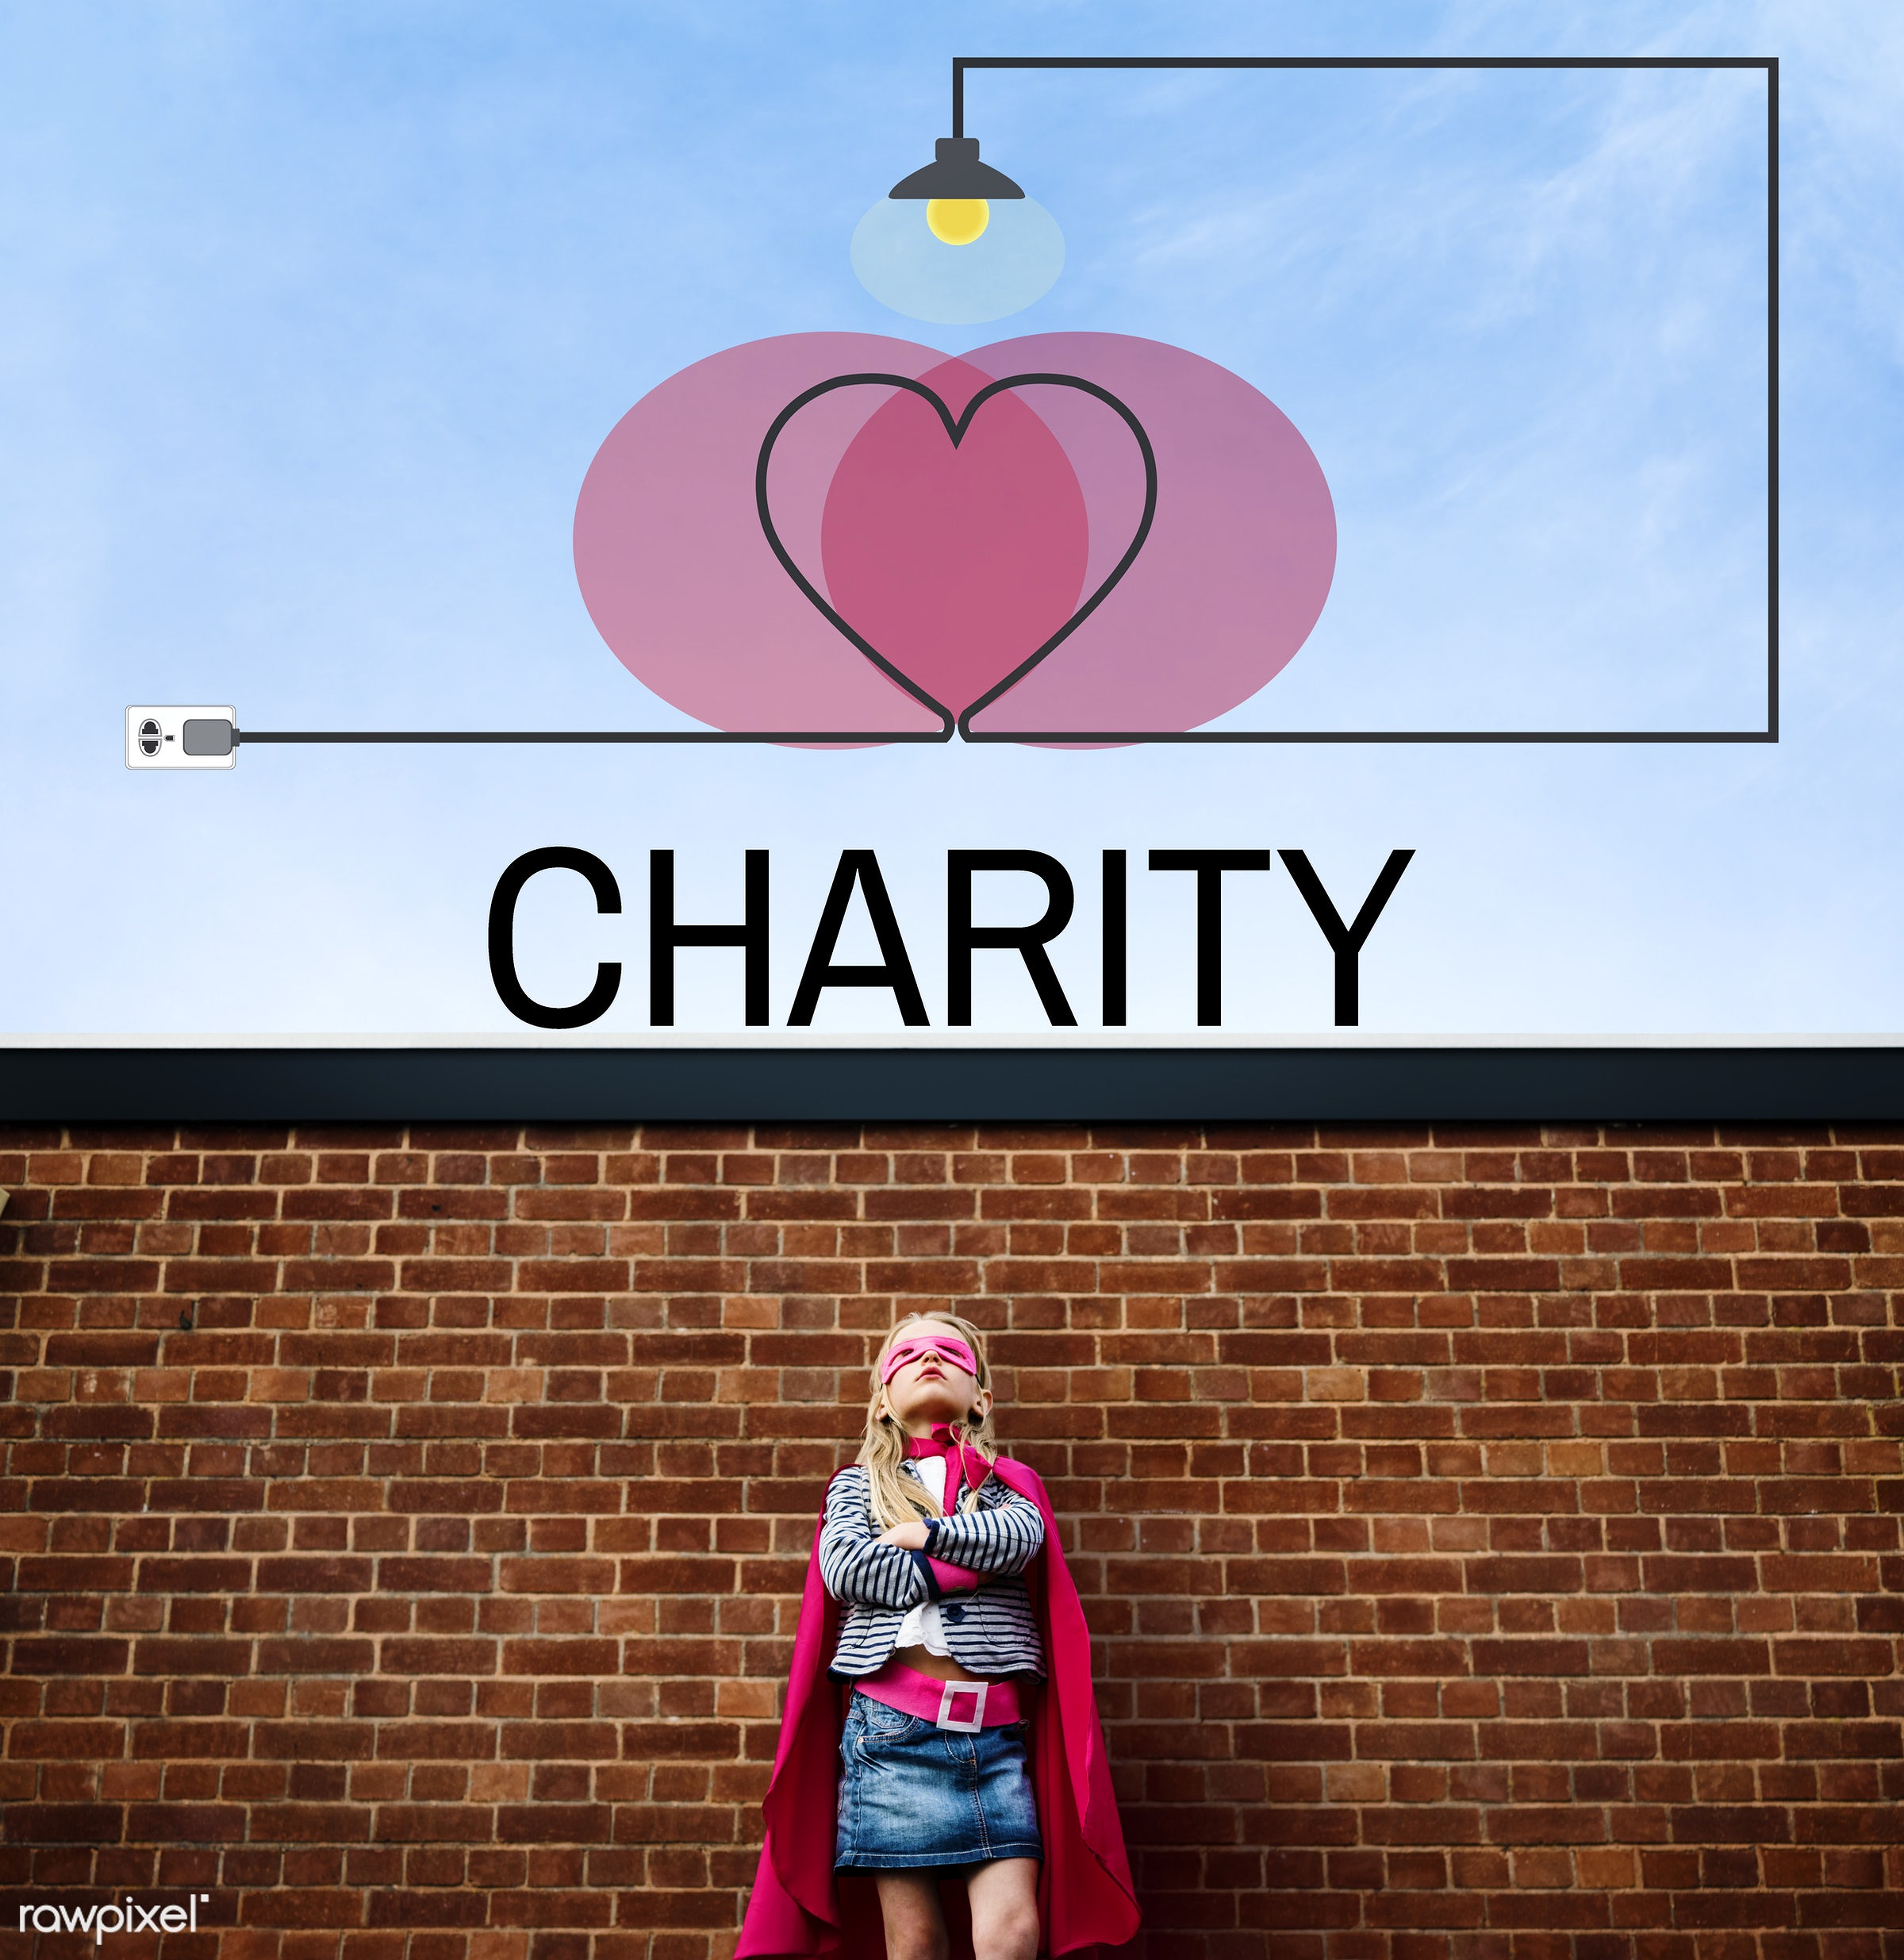 active, aid, assistance, brave, care, charitable, charity, child, childhood, community, contribute, costume, donate,...